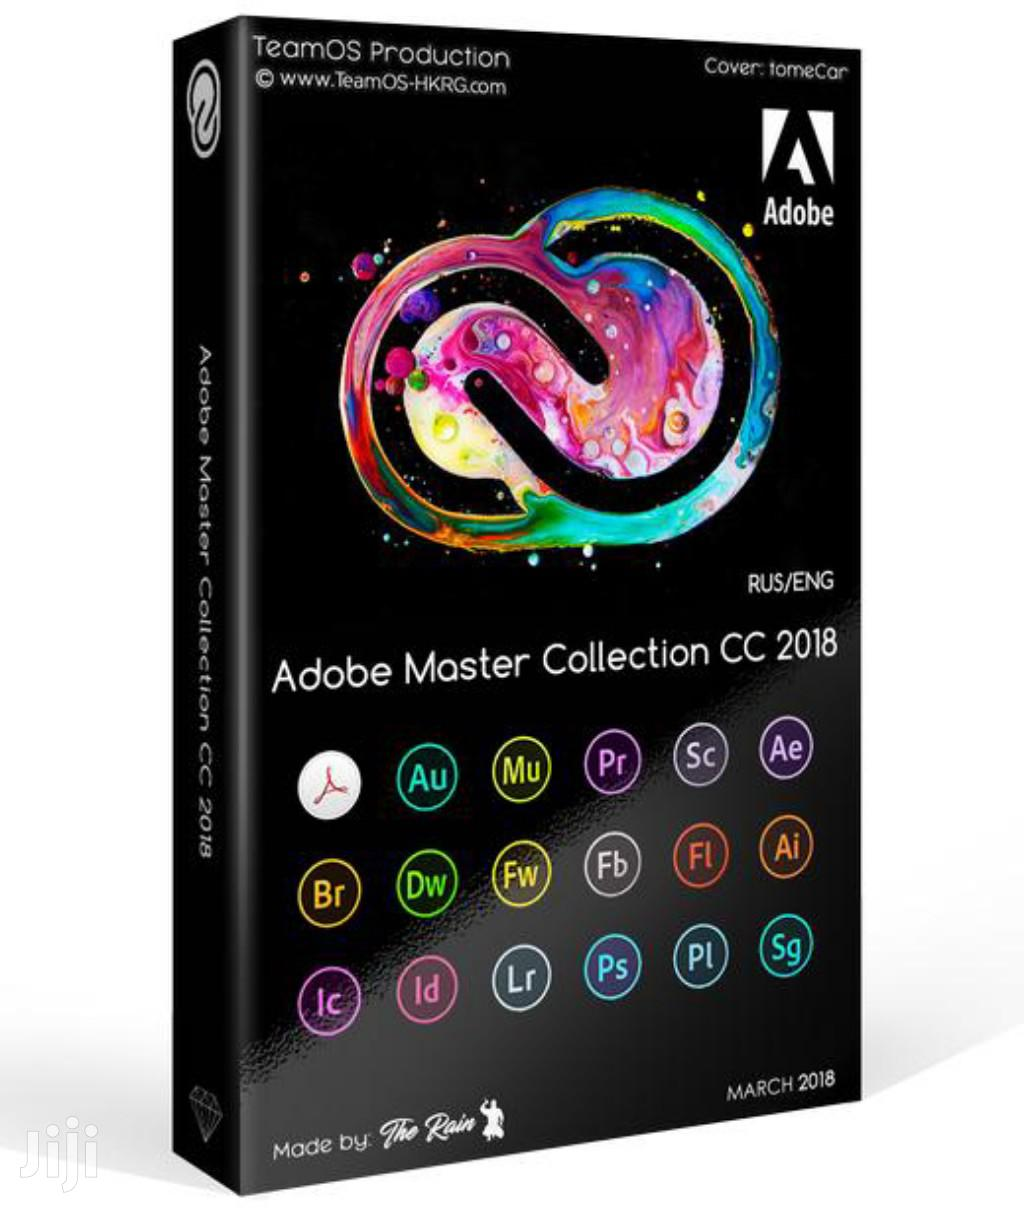 Archive: Adobe Master Collection